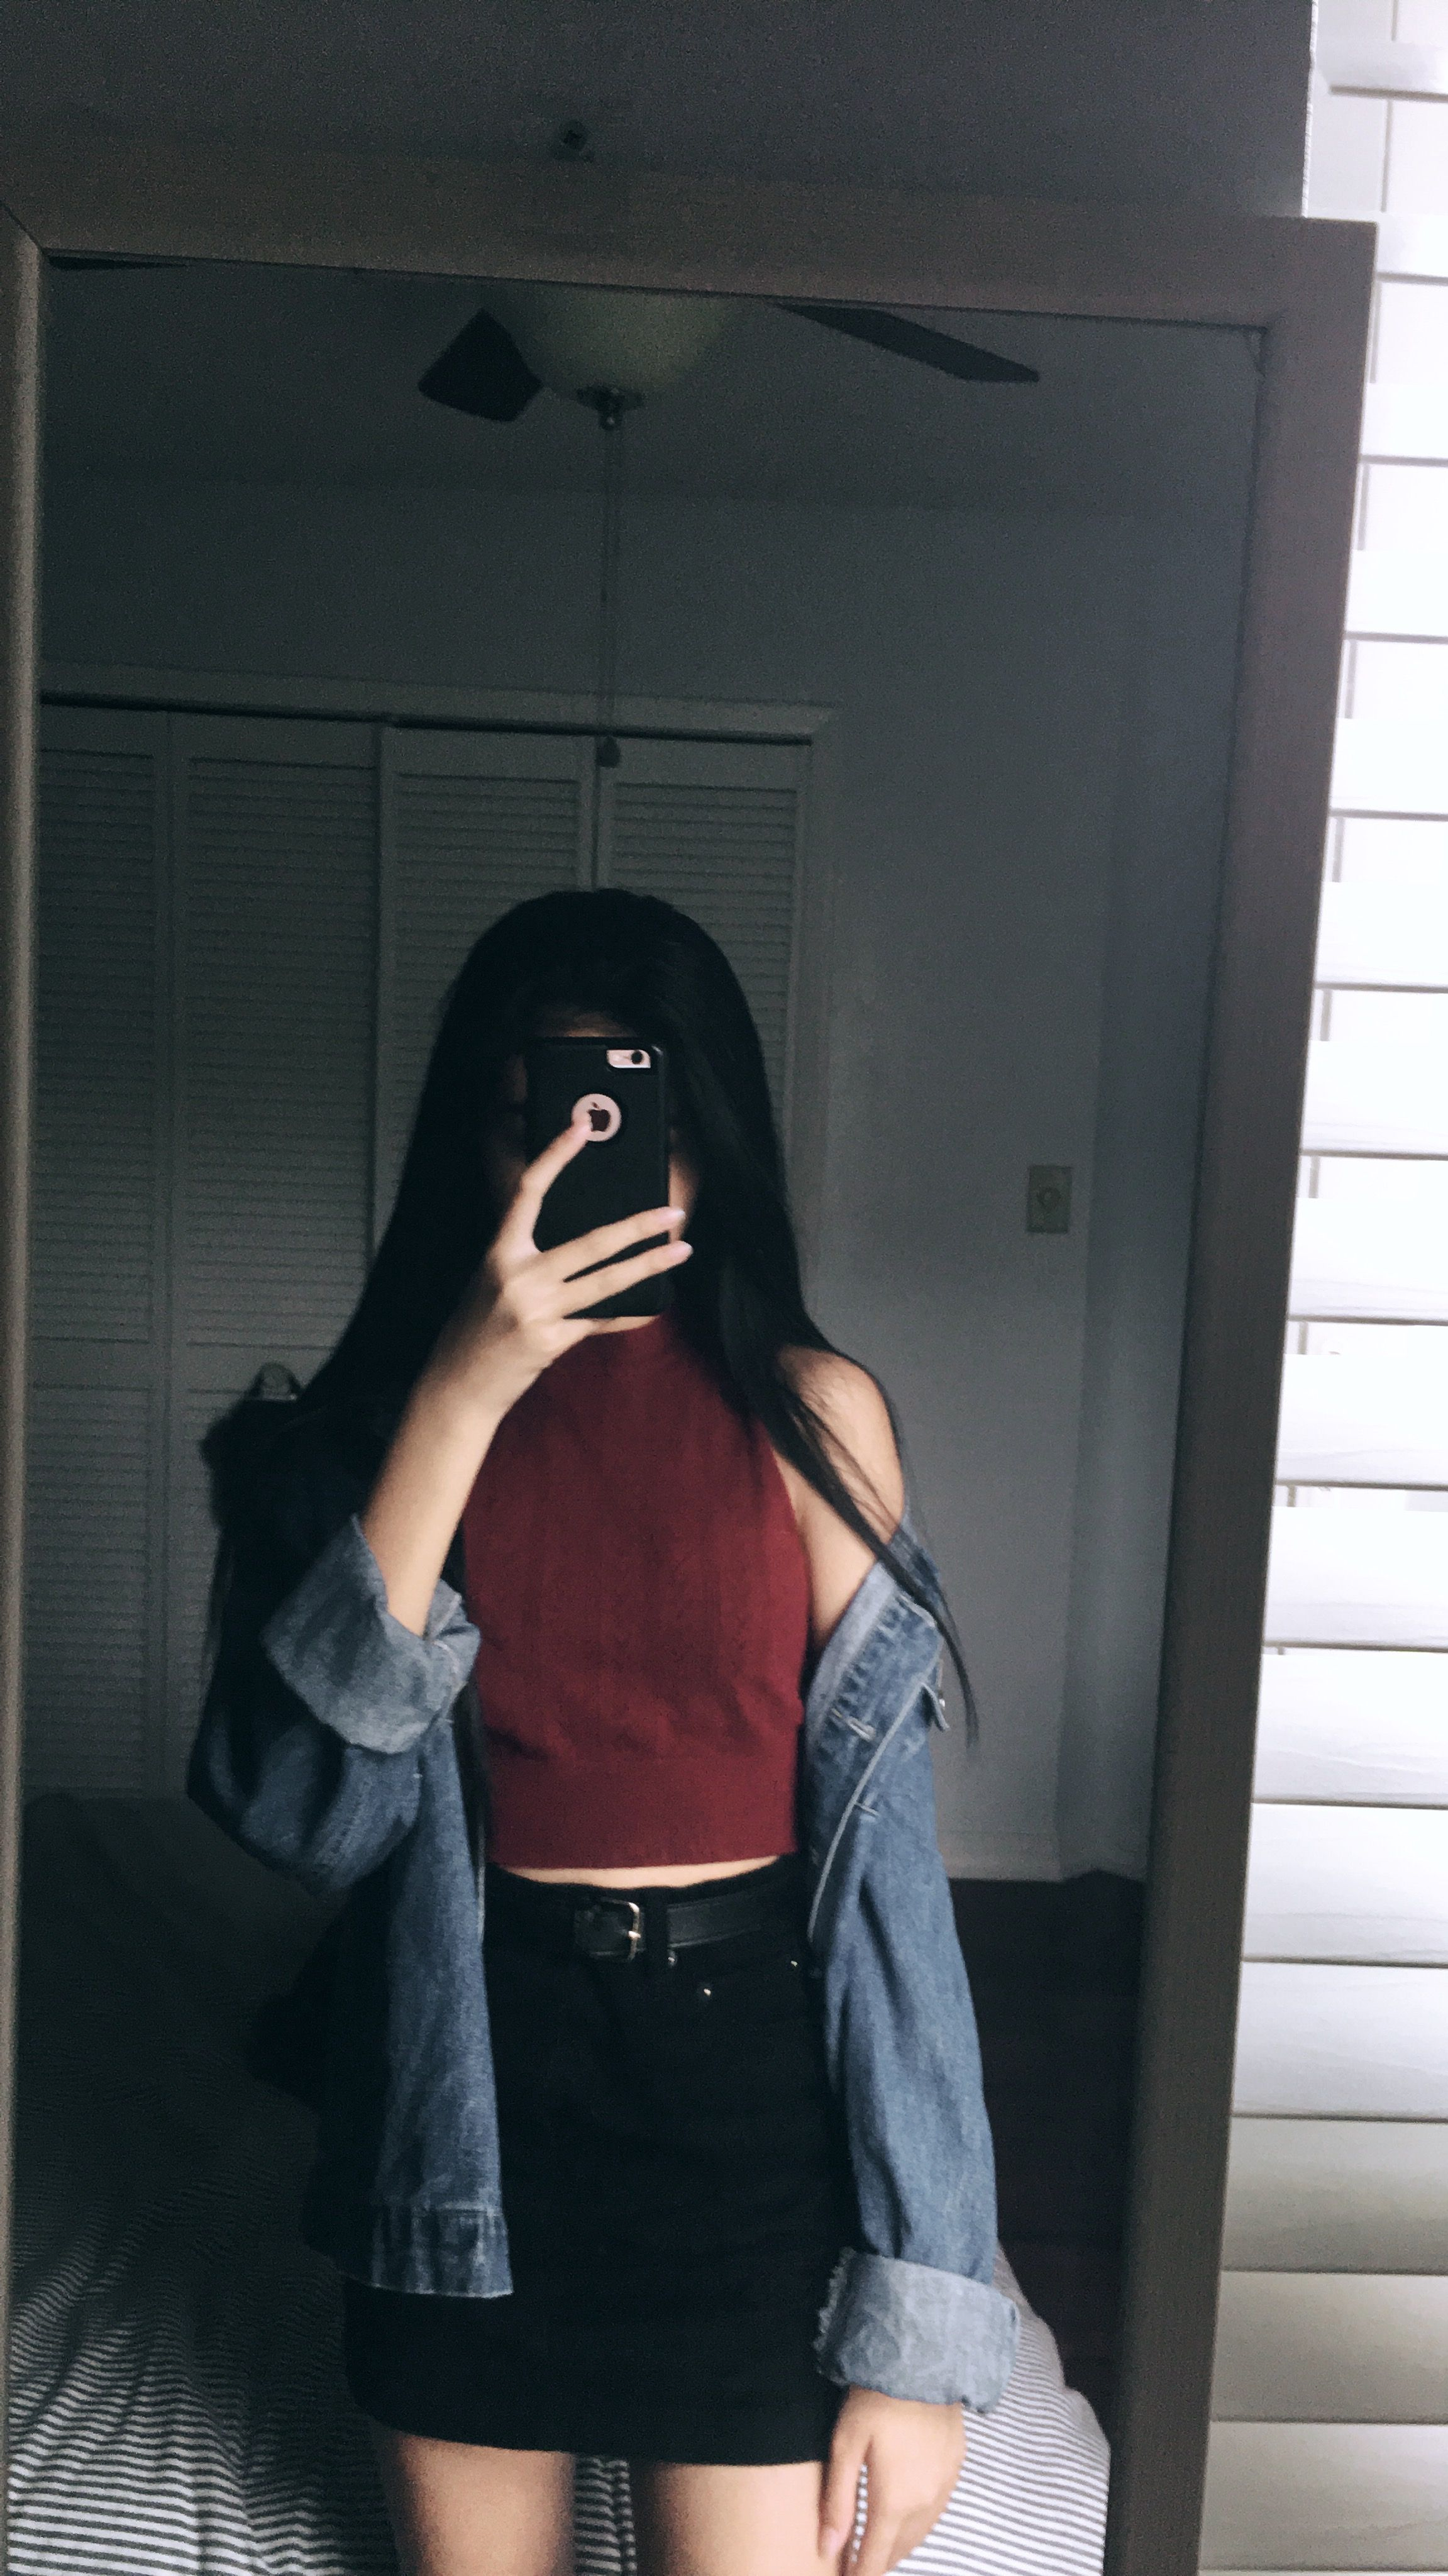 Ulzzang Girl Wallpapers Top Free Ulzzang Girl Backgrounds Wallpaperaccess It's a friendly place where rude or hurtful comments are not tolerated. ulzzang girl wallpapers top free